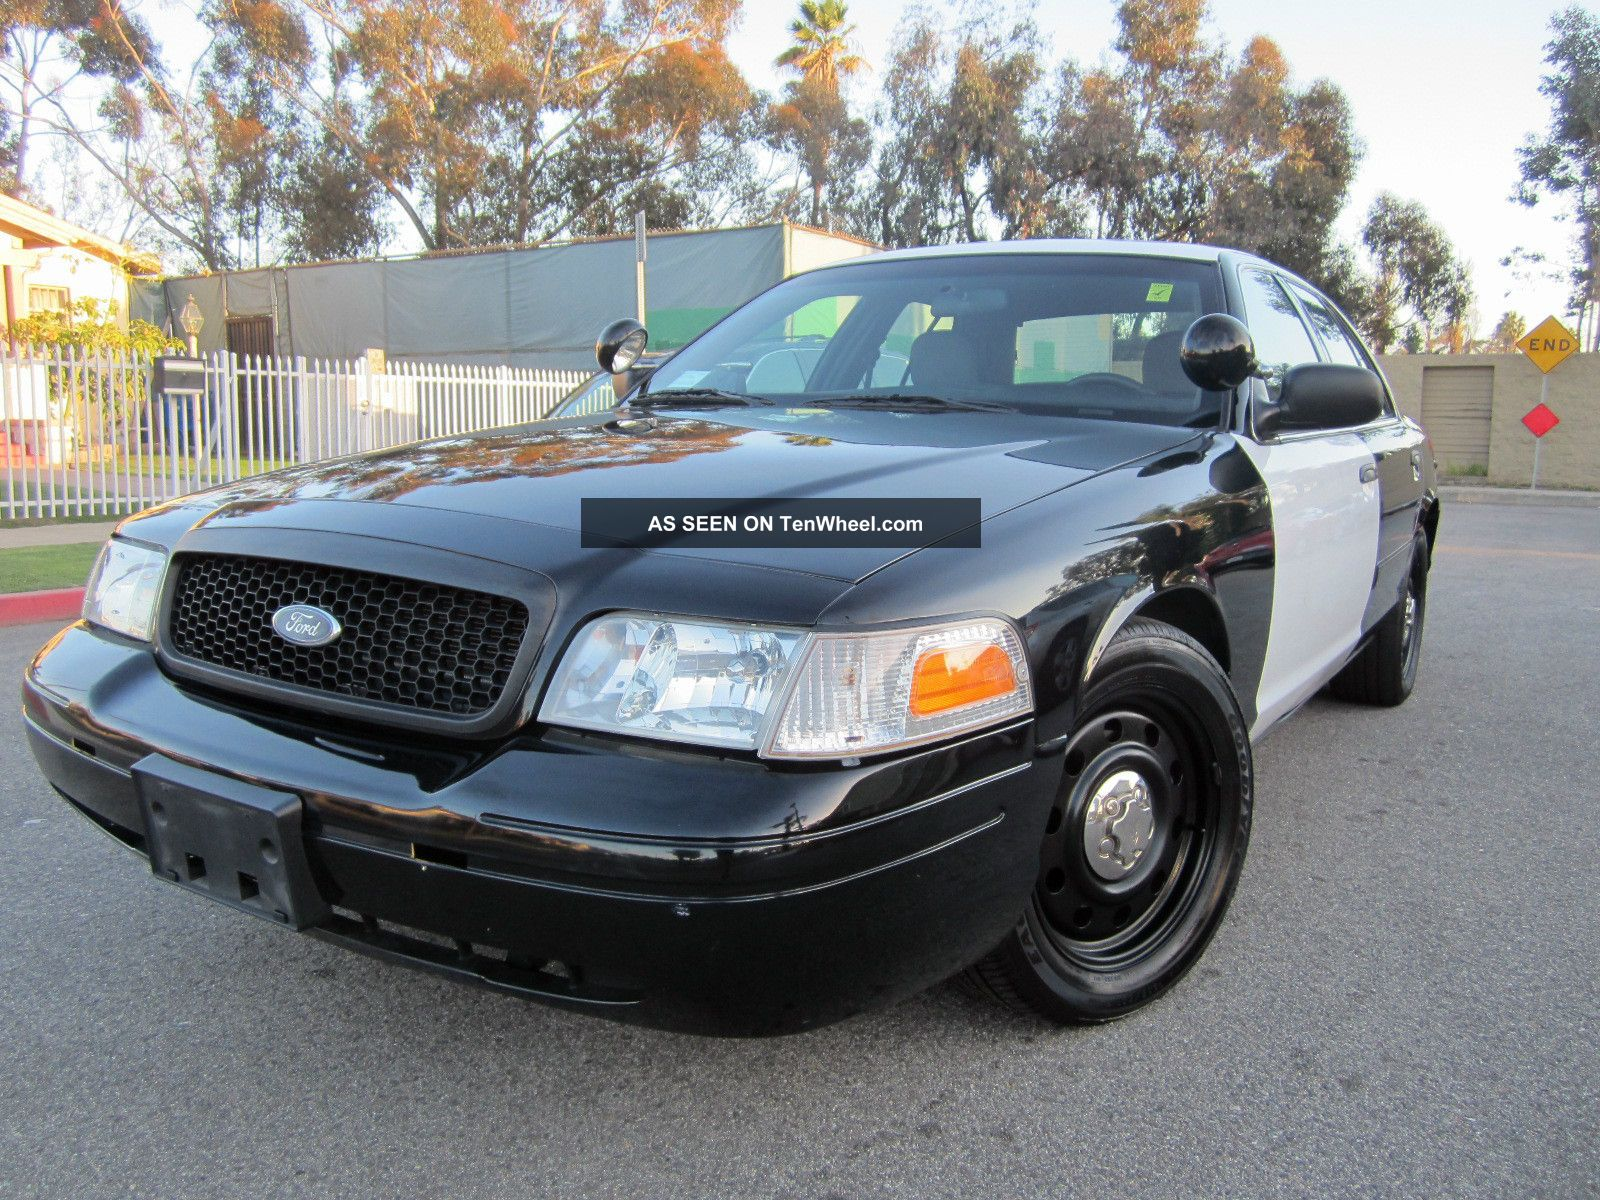 2009 ford crown victoria police interceptor sedan 4 door. Black Bedroom Furniture Sets. Home Design Ideas